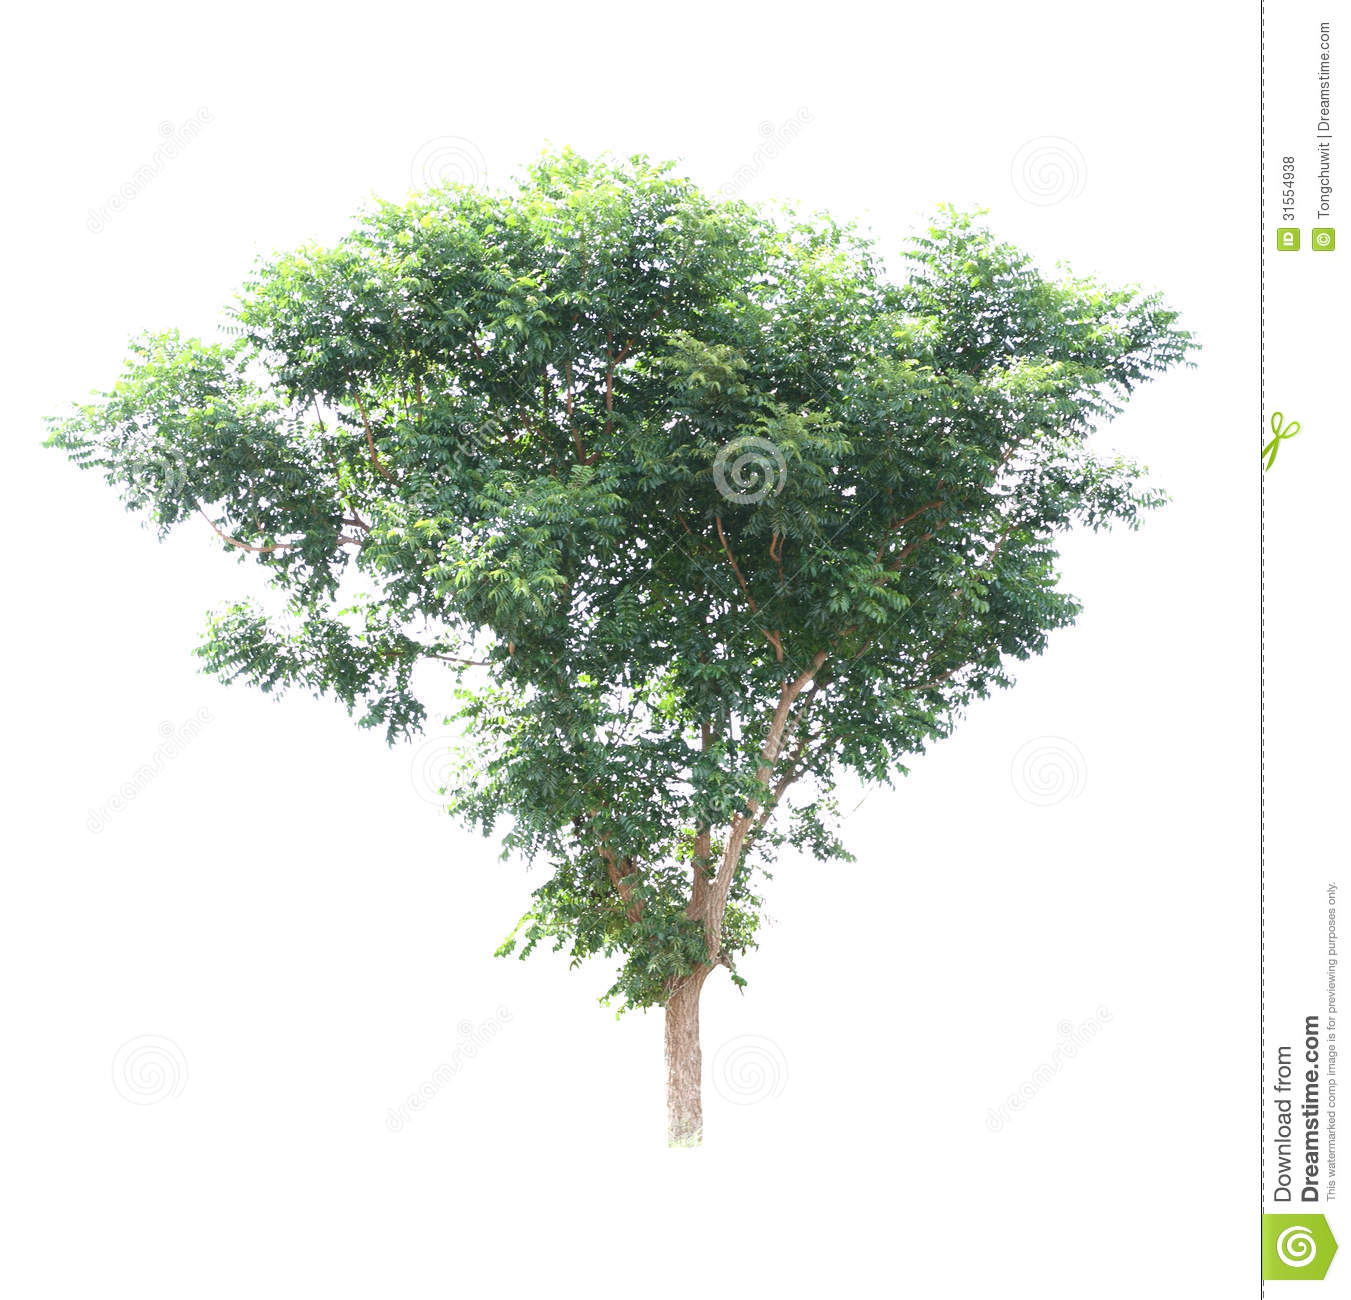 neem tree stock photos images u0026 pictures 805 images